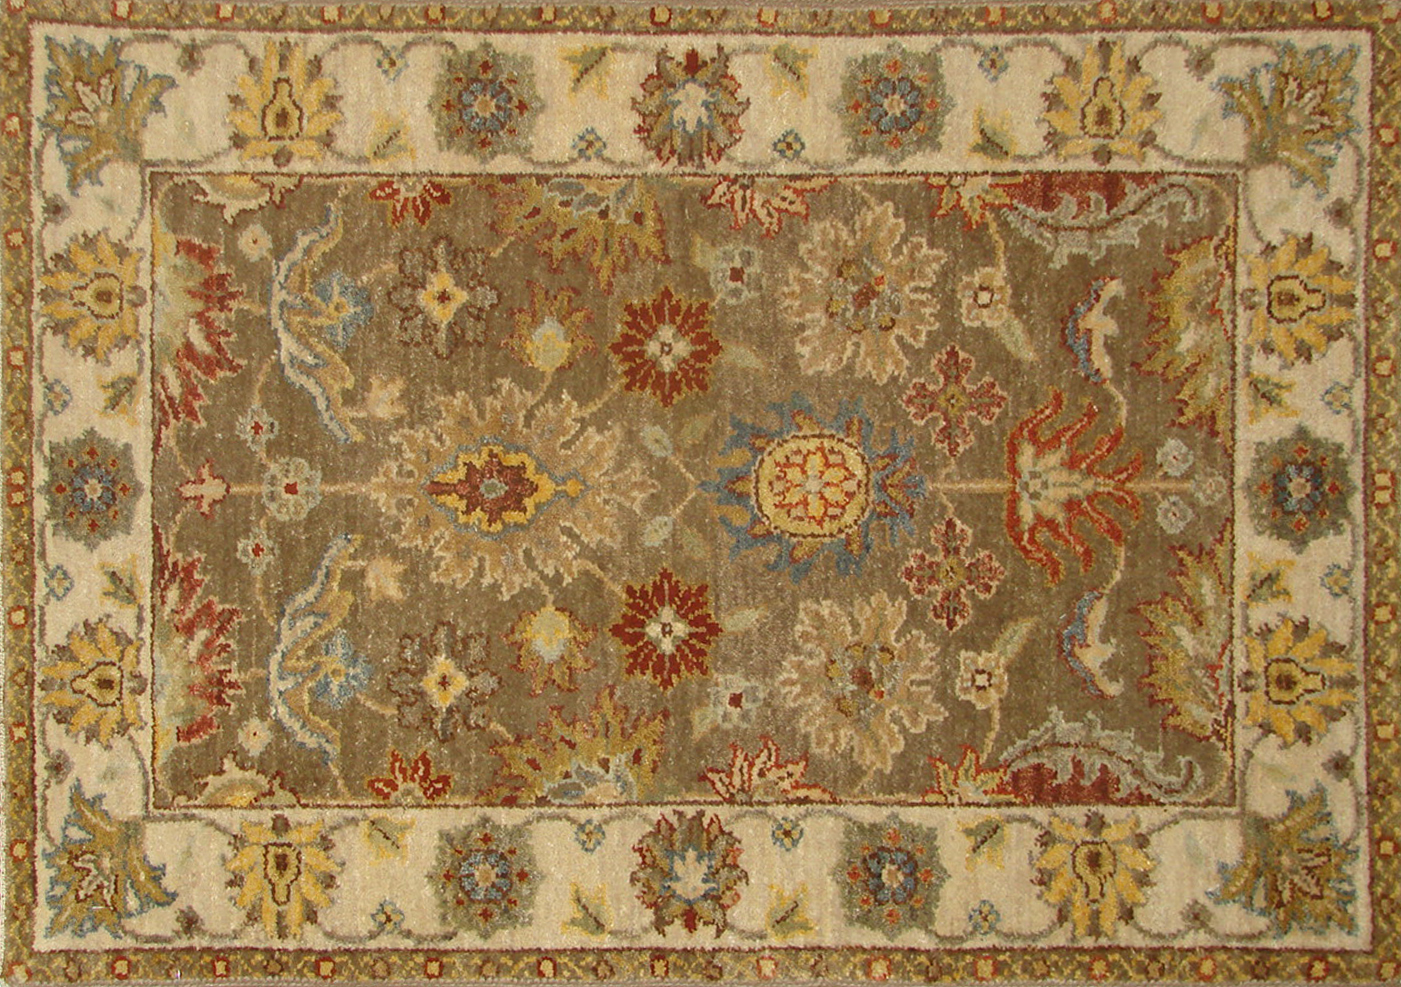 2X3 Traditional Hand Knotted Wool Area Rug - MR18690